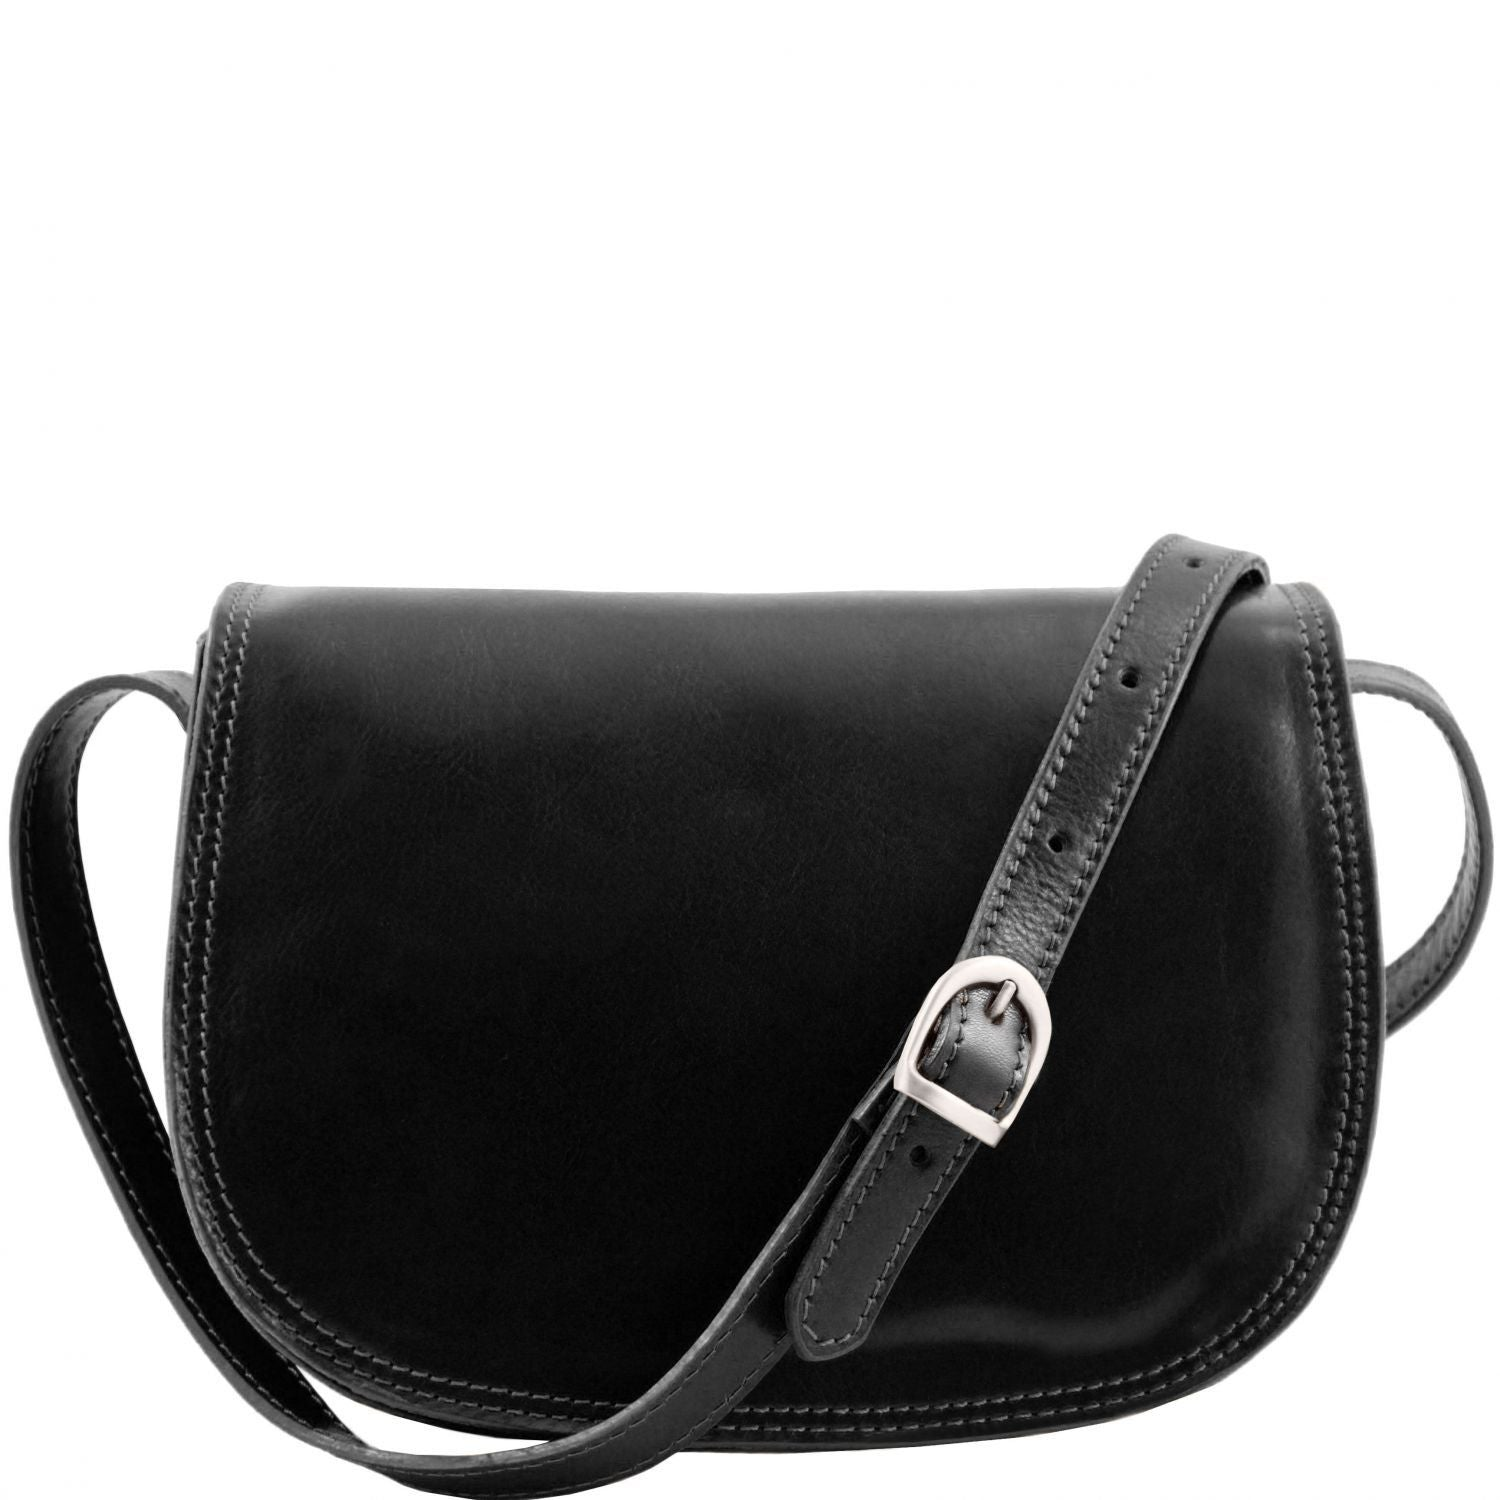 Isabella - Lady leather bag (TL9031) - Leather shoulder bags | DILUSSOBAGS